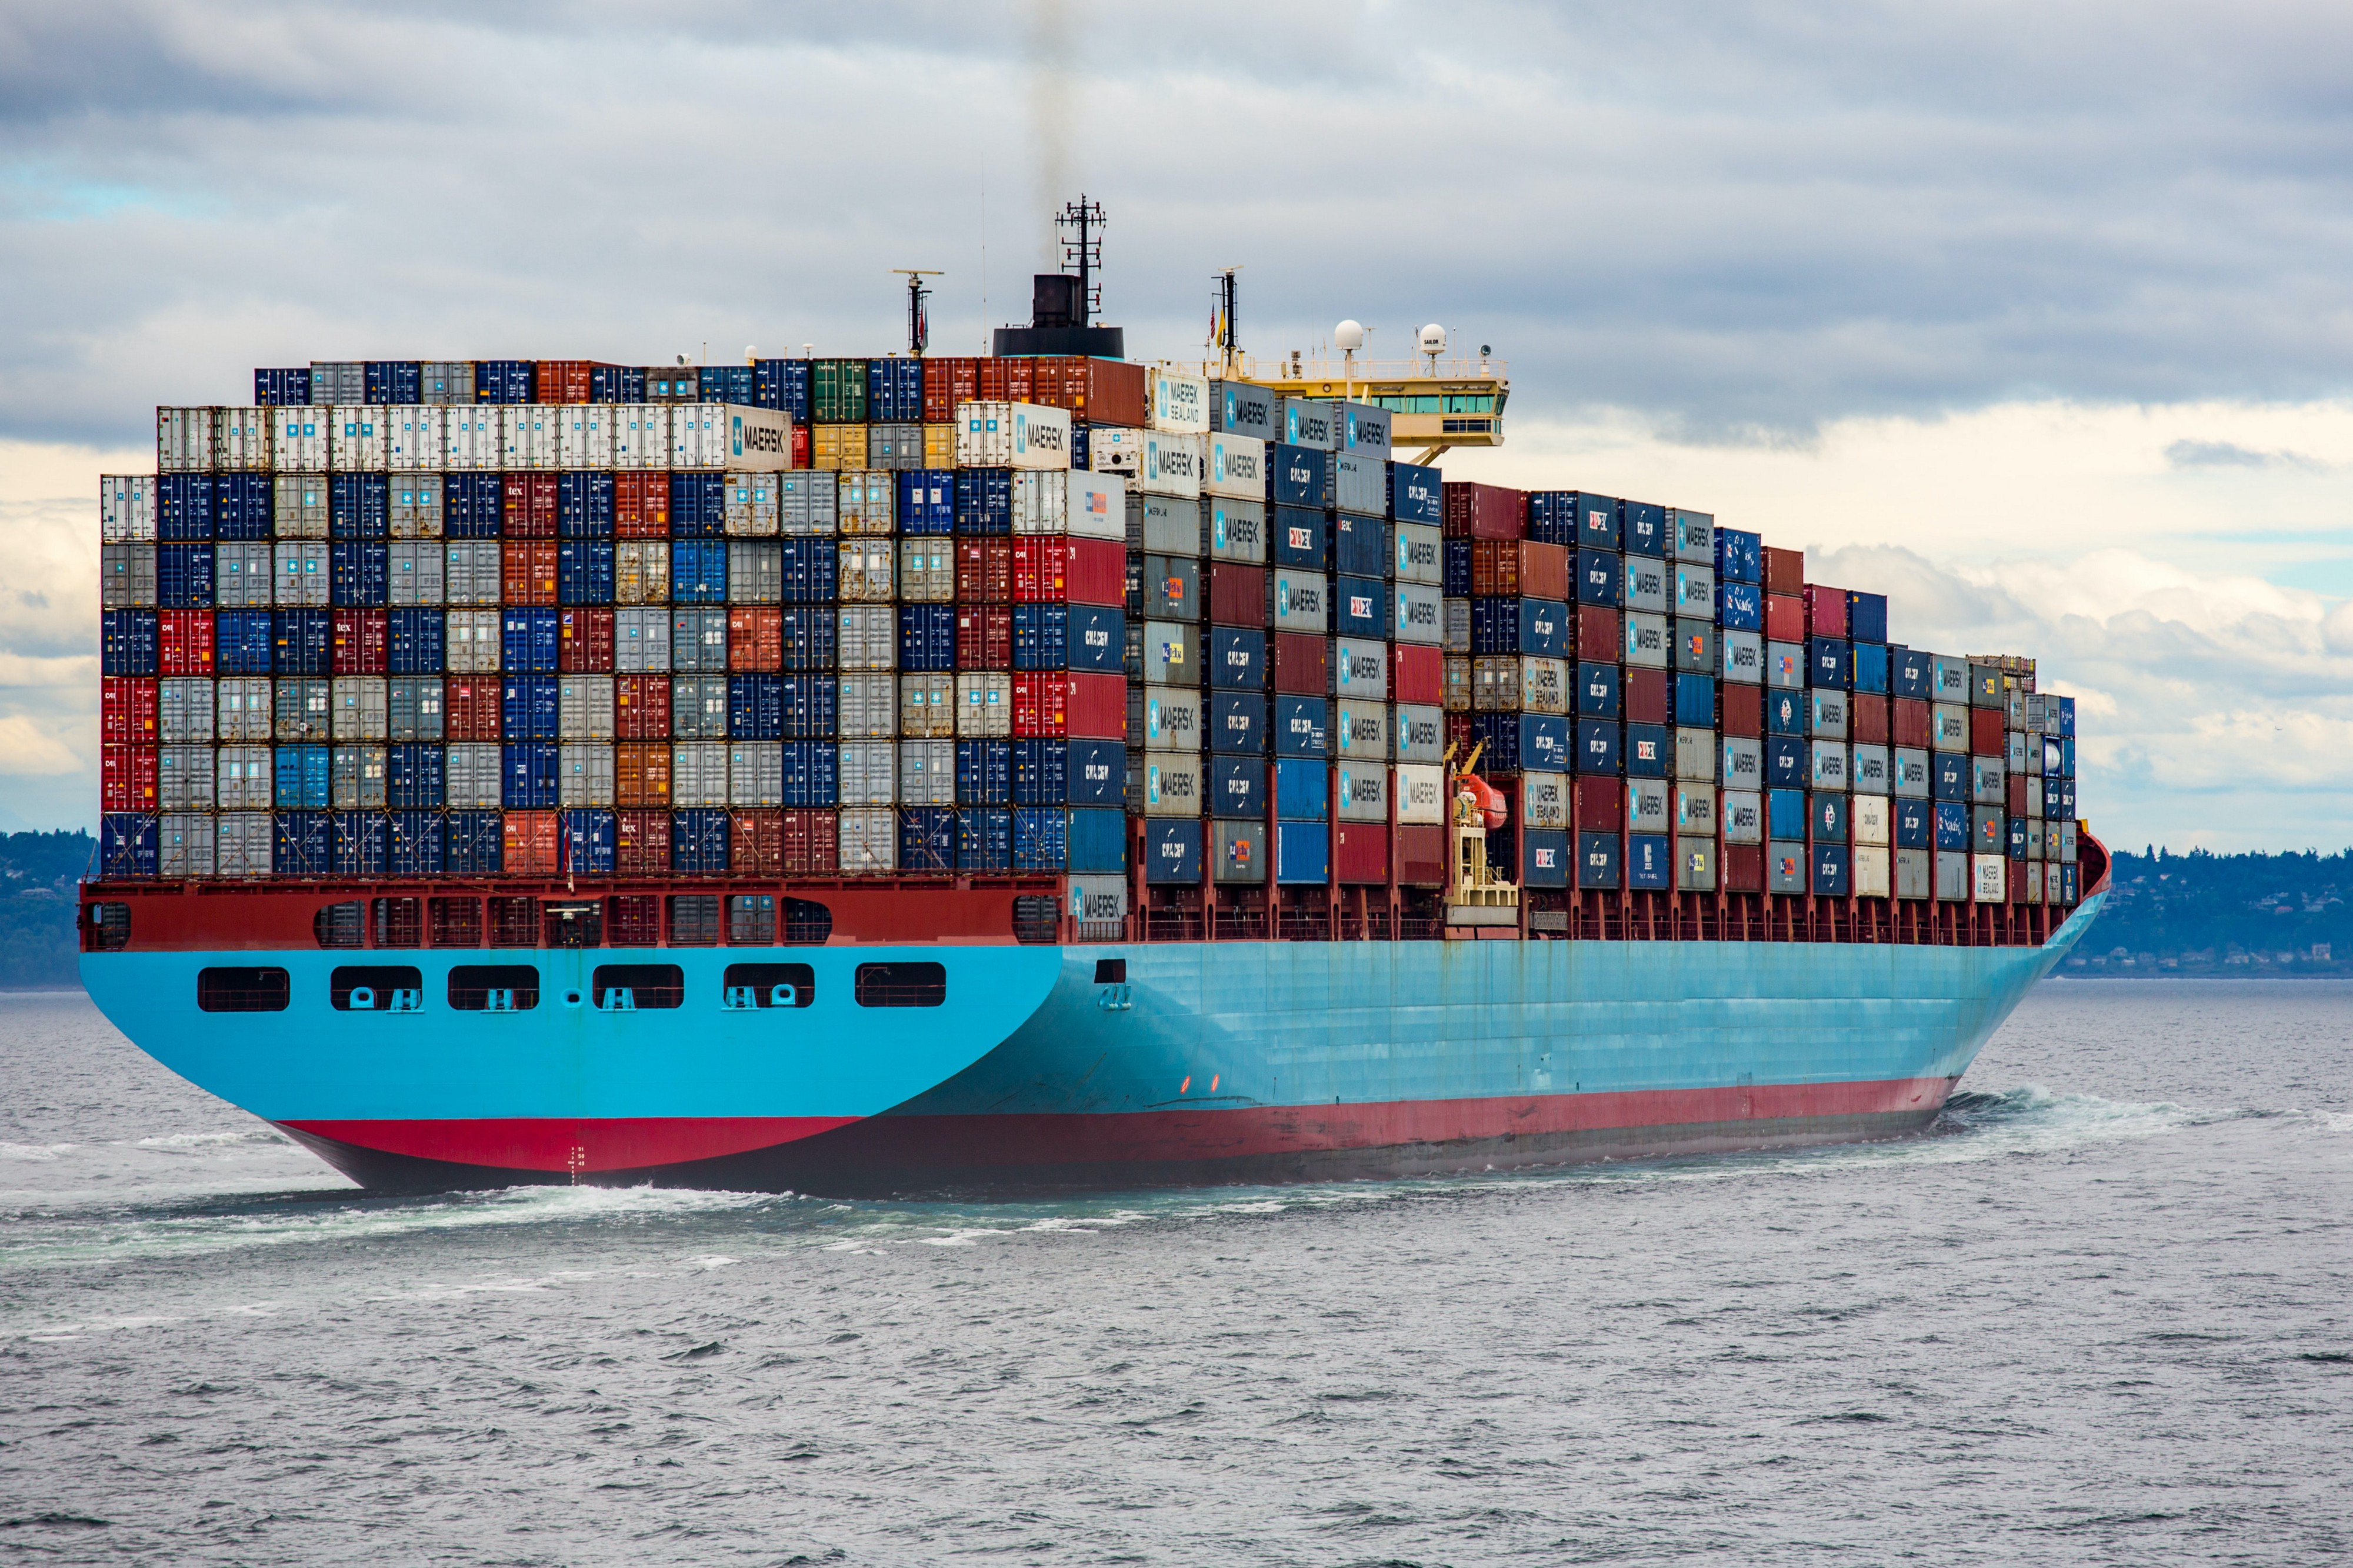 A gigantic blue container ship stacked high with thousands of shipping containers on a body of water with hilly shore in the distance.